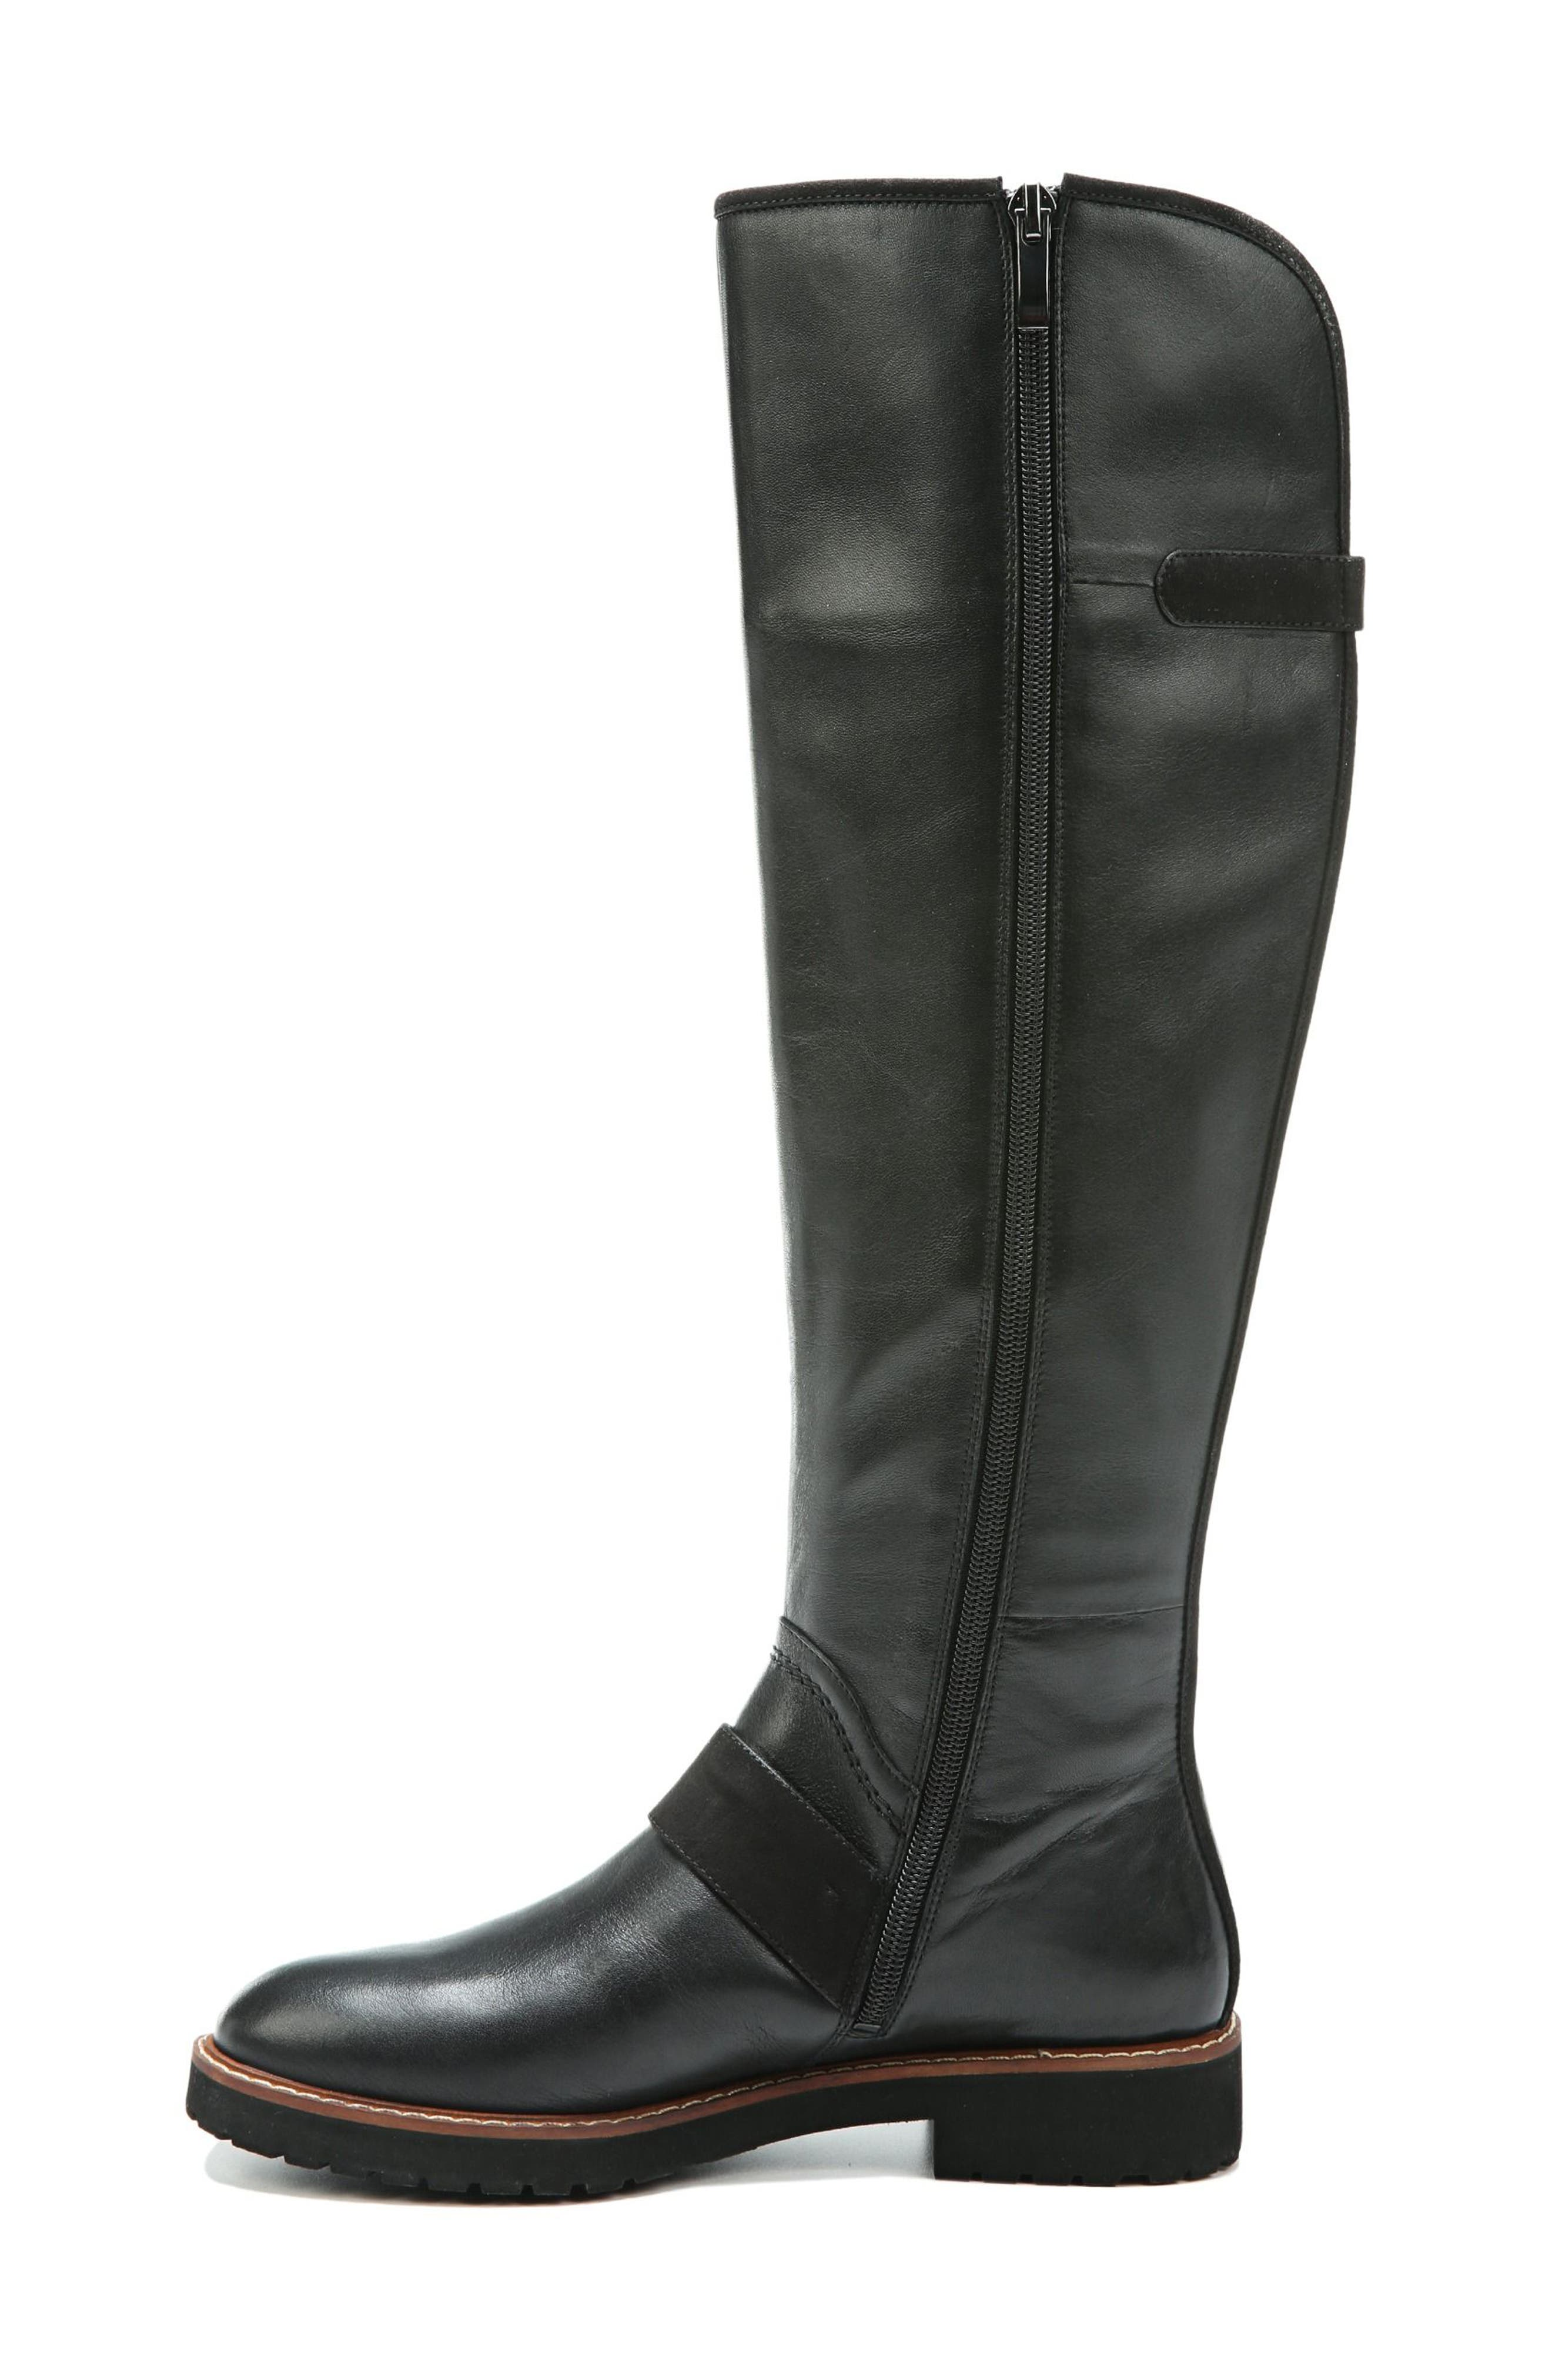 Cutler Riding Boot,                             Alternate thumbnail 2, color,                             Black Leather